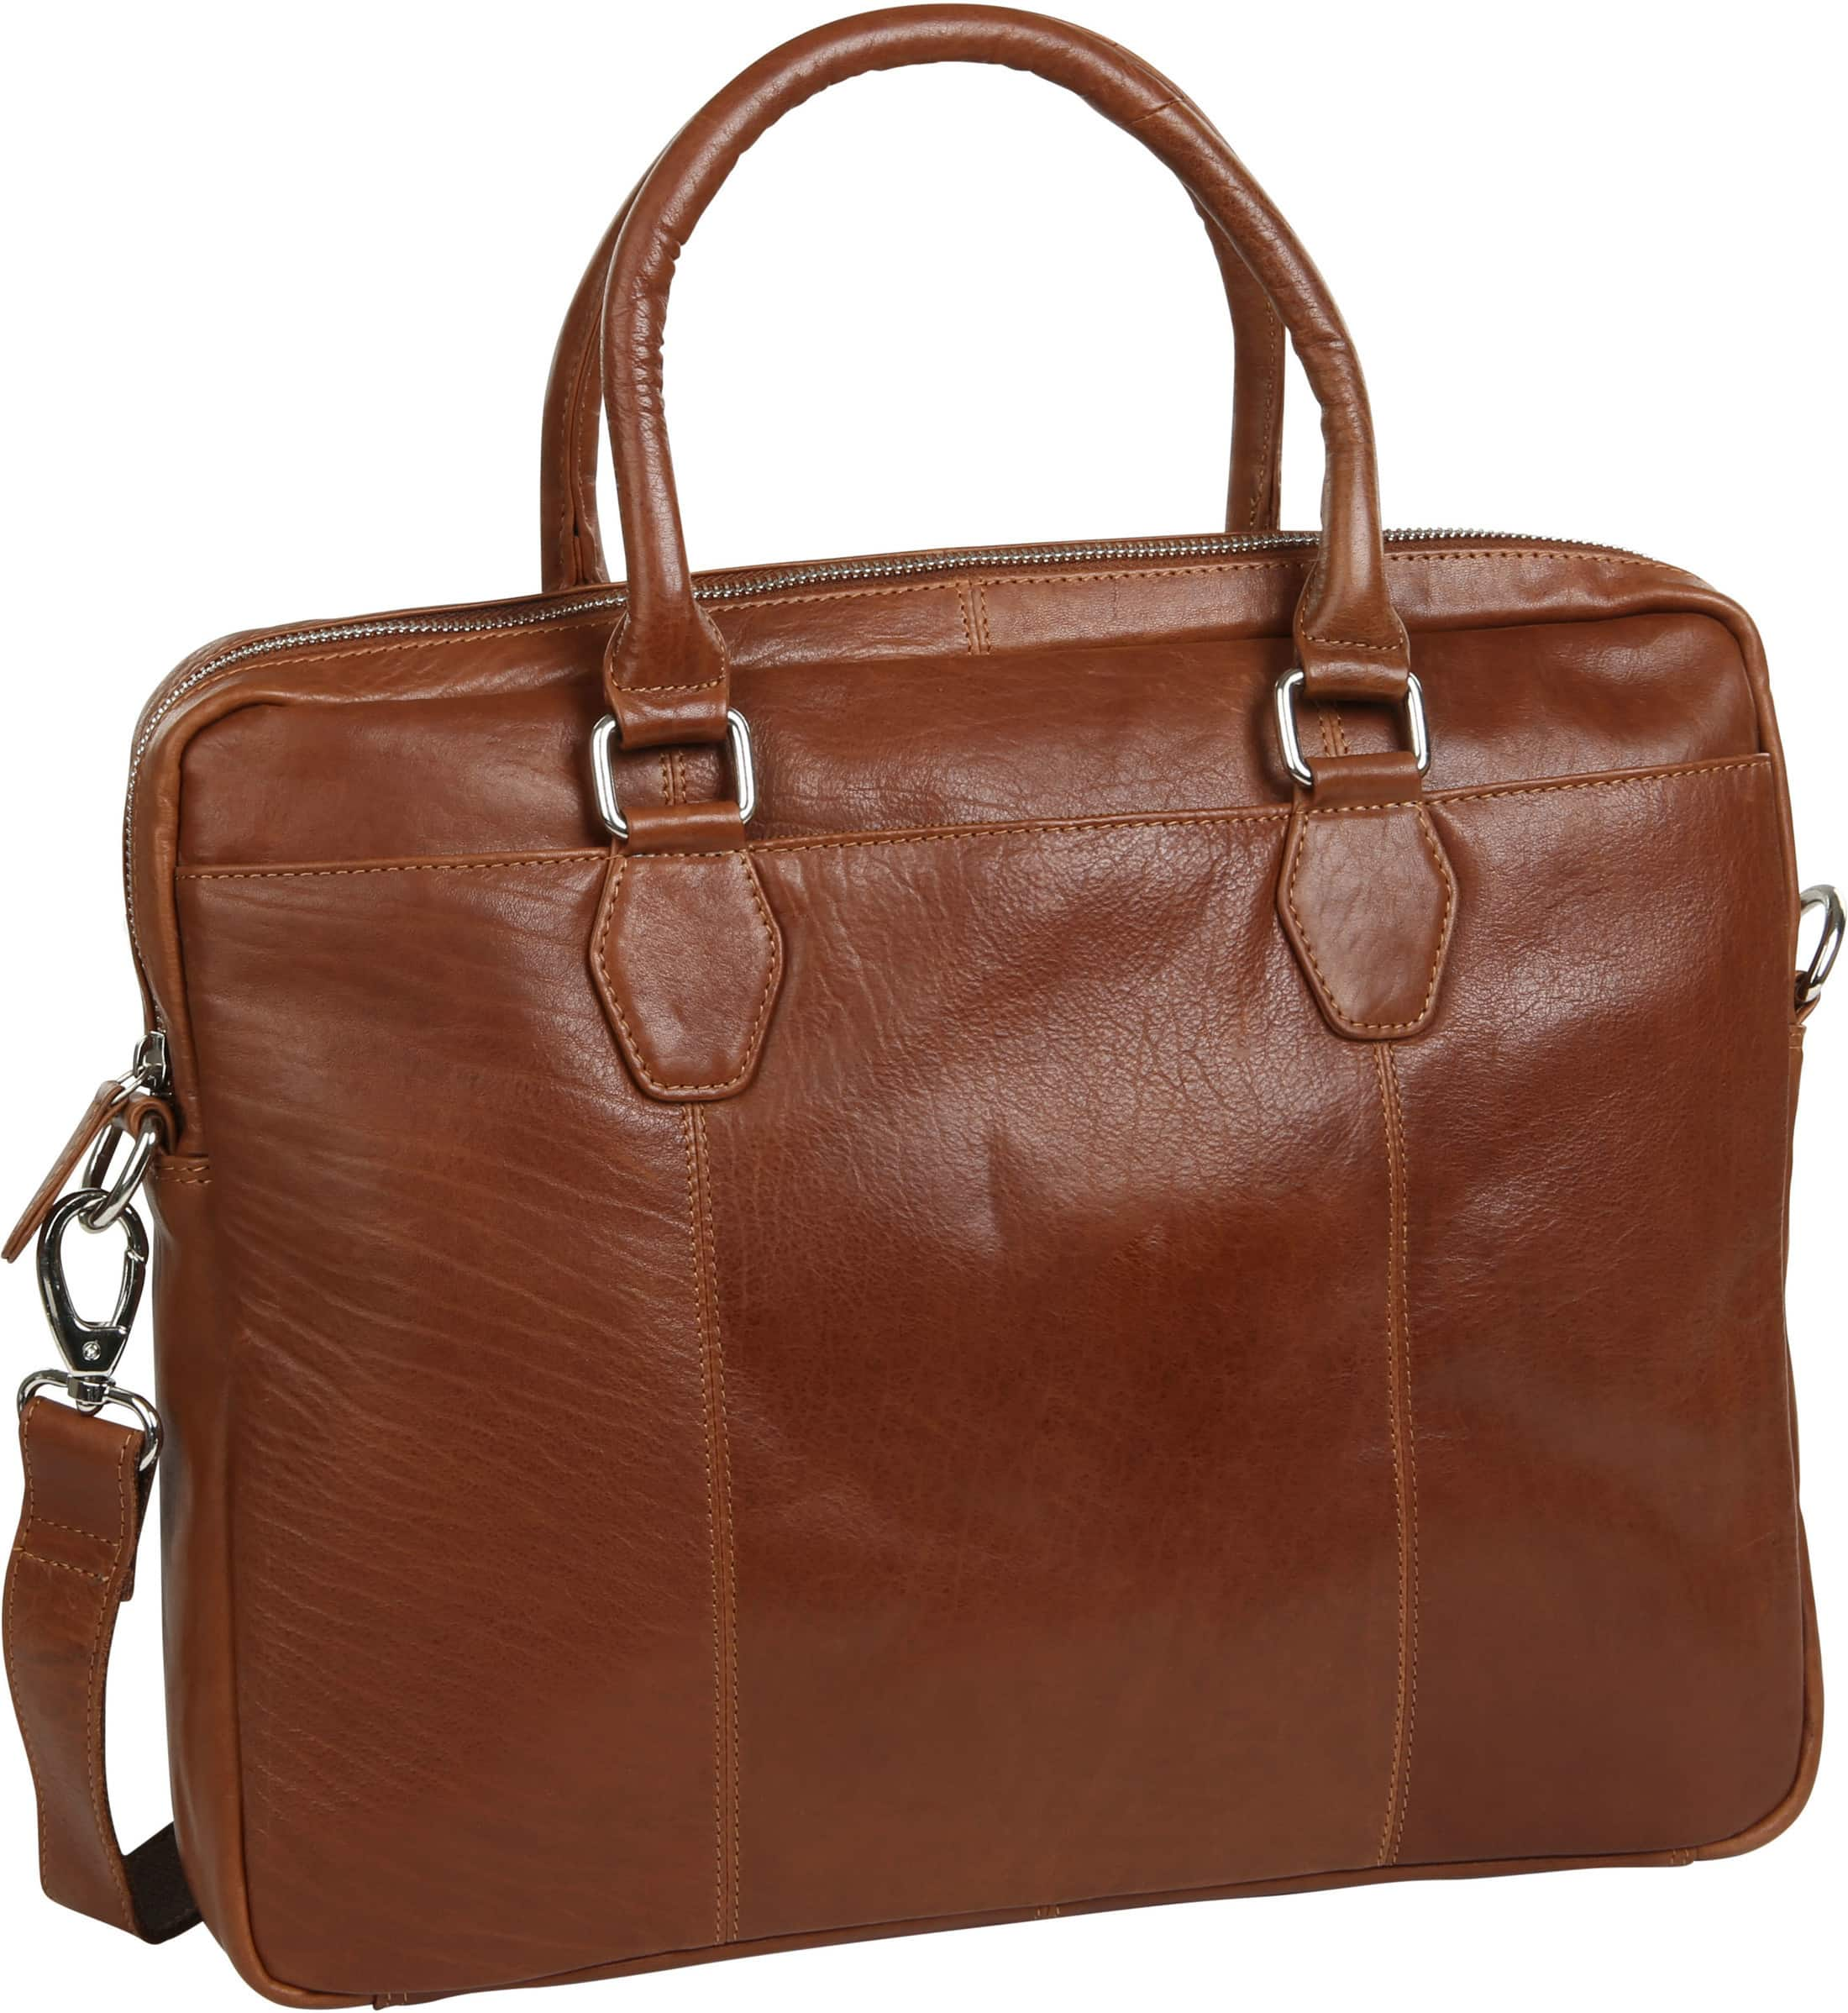 1c3bd372ab4 Suitable Leather Laptop Bag 17 Inch Cognac 5205 Laptop Tas Tan order ...